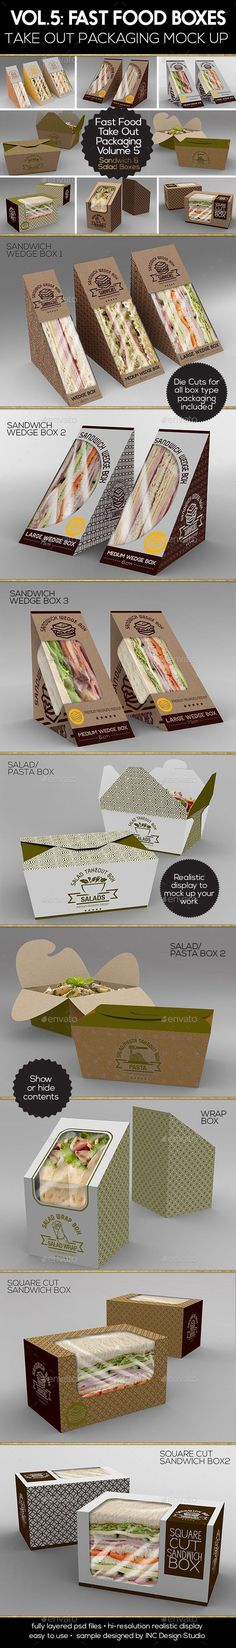 Fast Food Boxes Vol.5:Take Out Packaging Mock Ups — Photoshop PSD #pasta #disposable • Available here → https://graphicriver.net/item/fast-food-boxes-vol5take-out-packaging-mock-ups/18337613?ref=pxcr